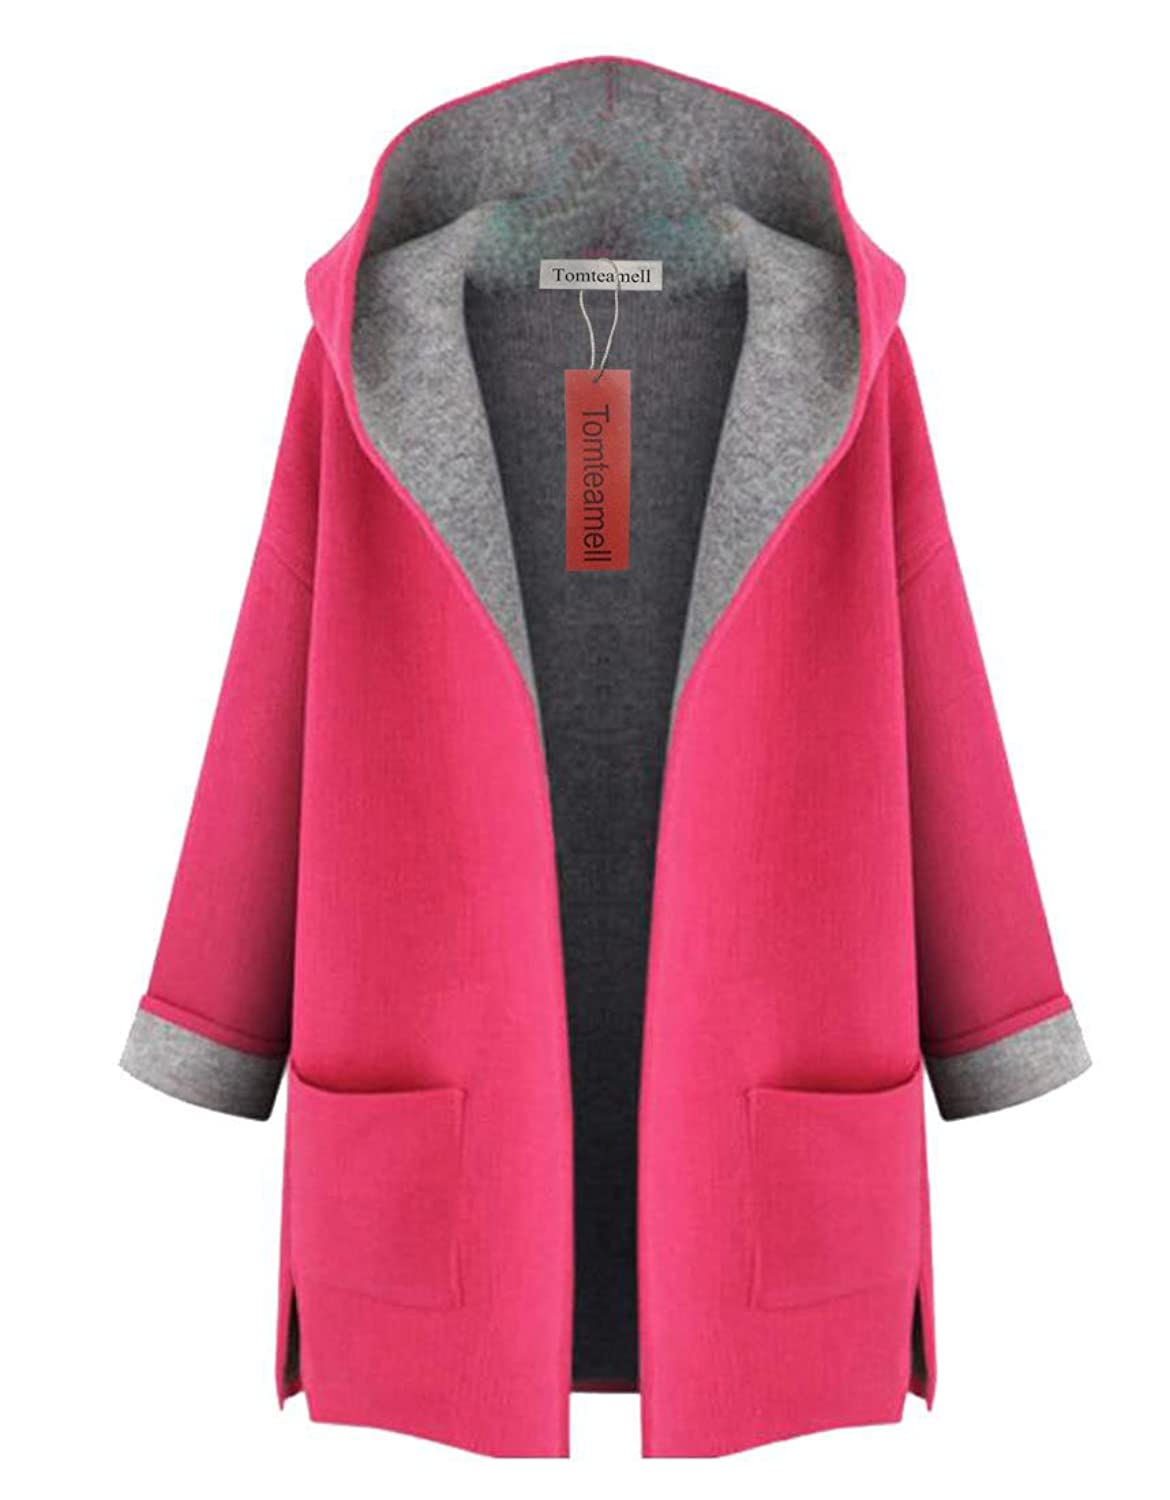 Womens Coat with Hood, Long Sleeve Mid Lengh with Two Pockets